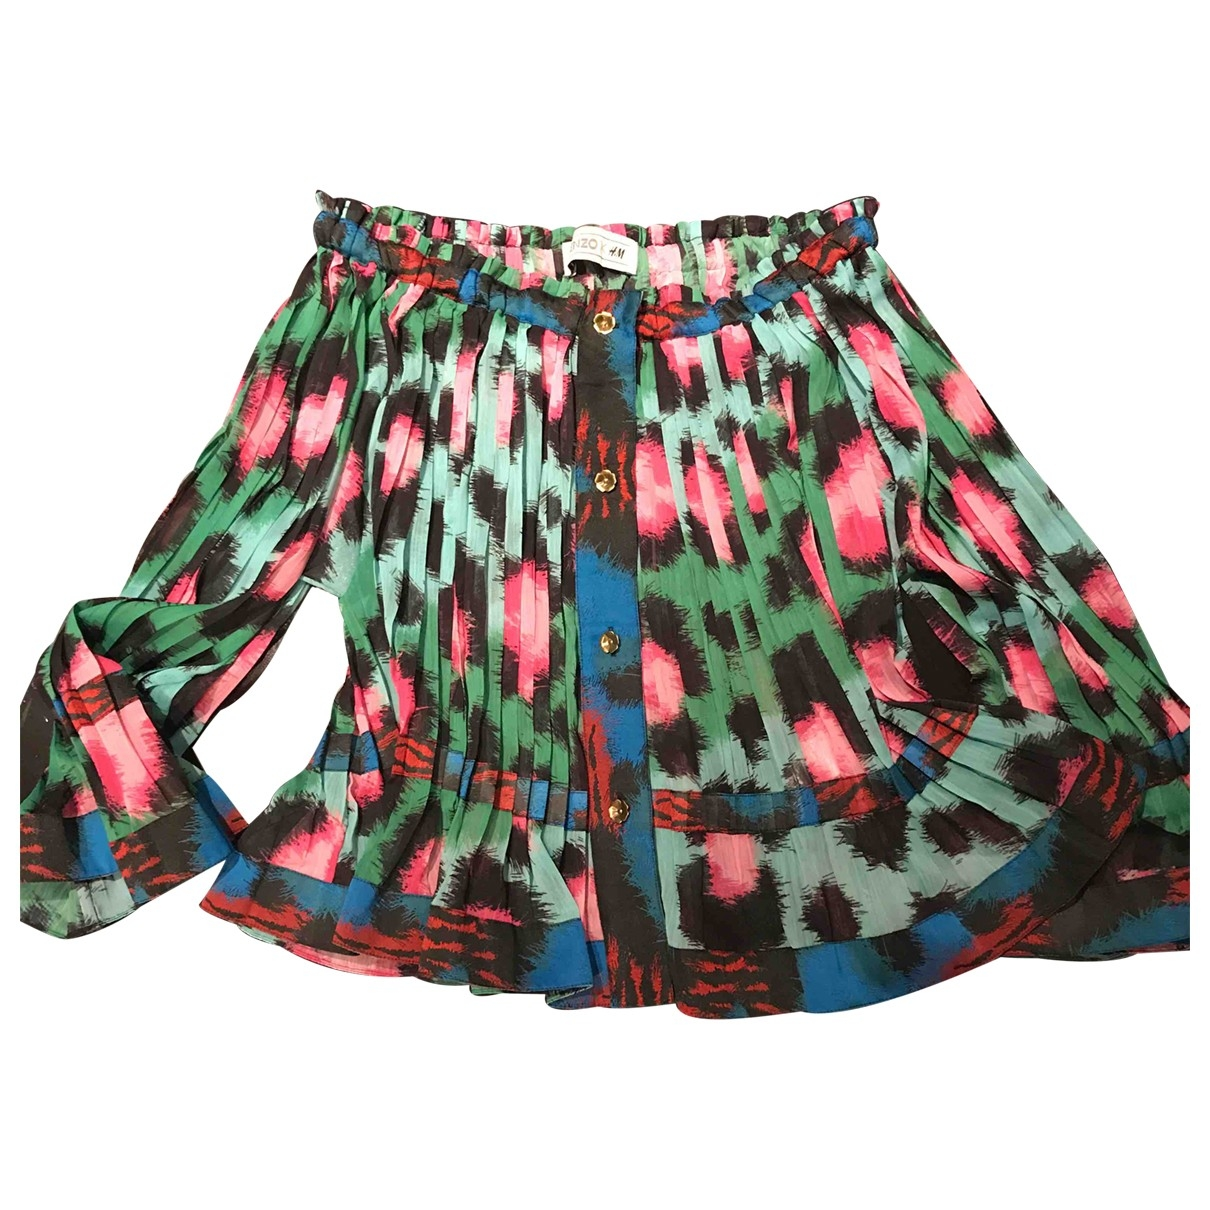 Kenzo X H&m \N Top in  Bunt Polyester